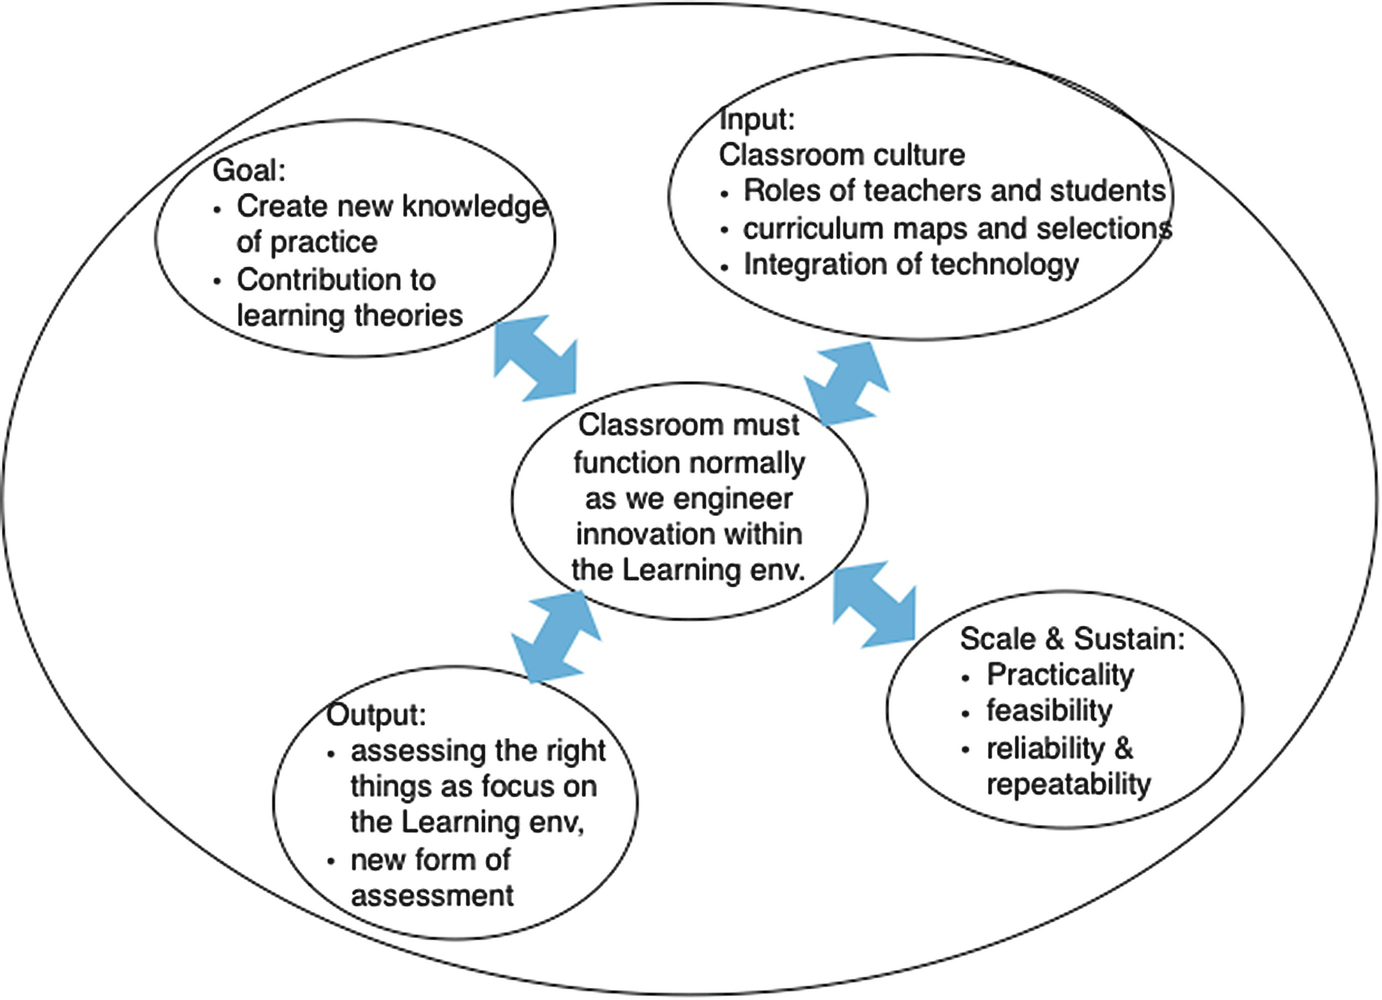 Community-Based Design Research to Sustain Classroom